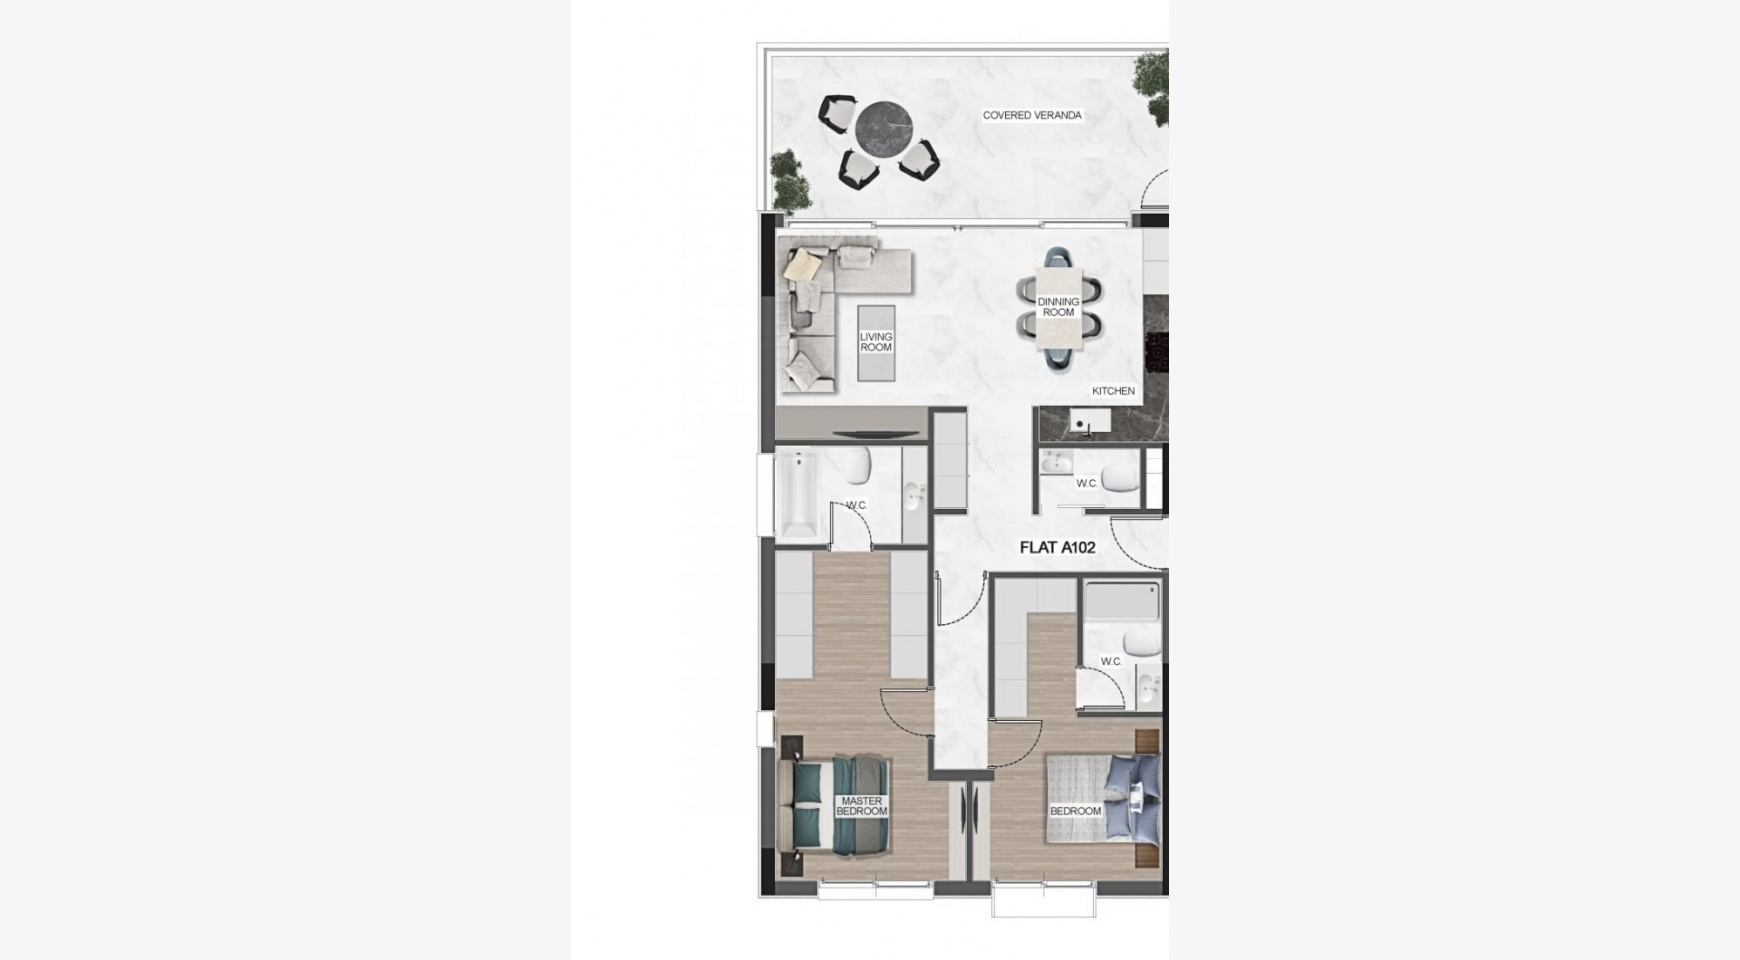 Urban City Residences, Block B. New Spacious 3 Bedroom Apartment 101 in the City Centre - 41